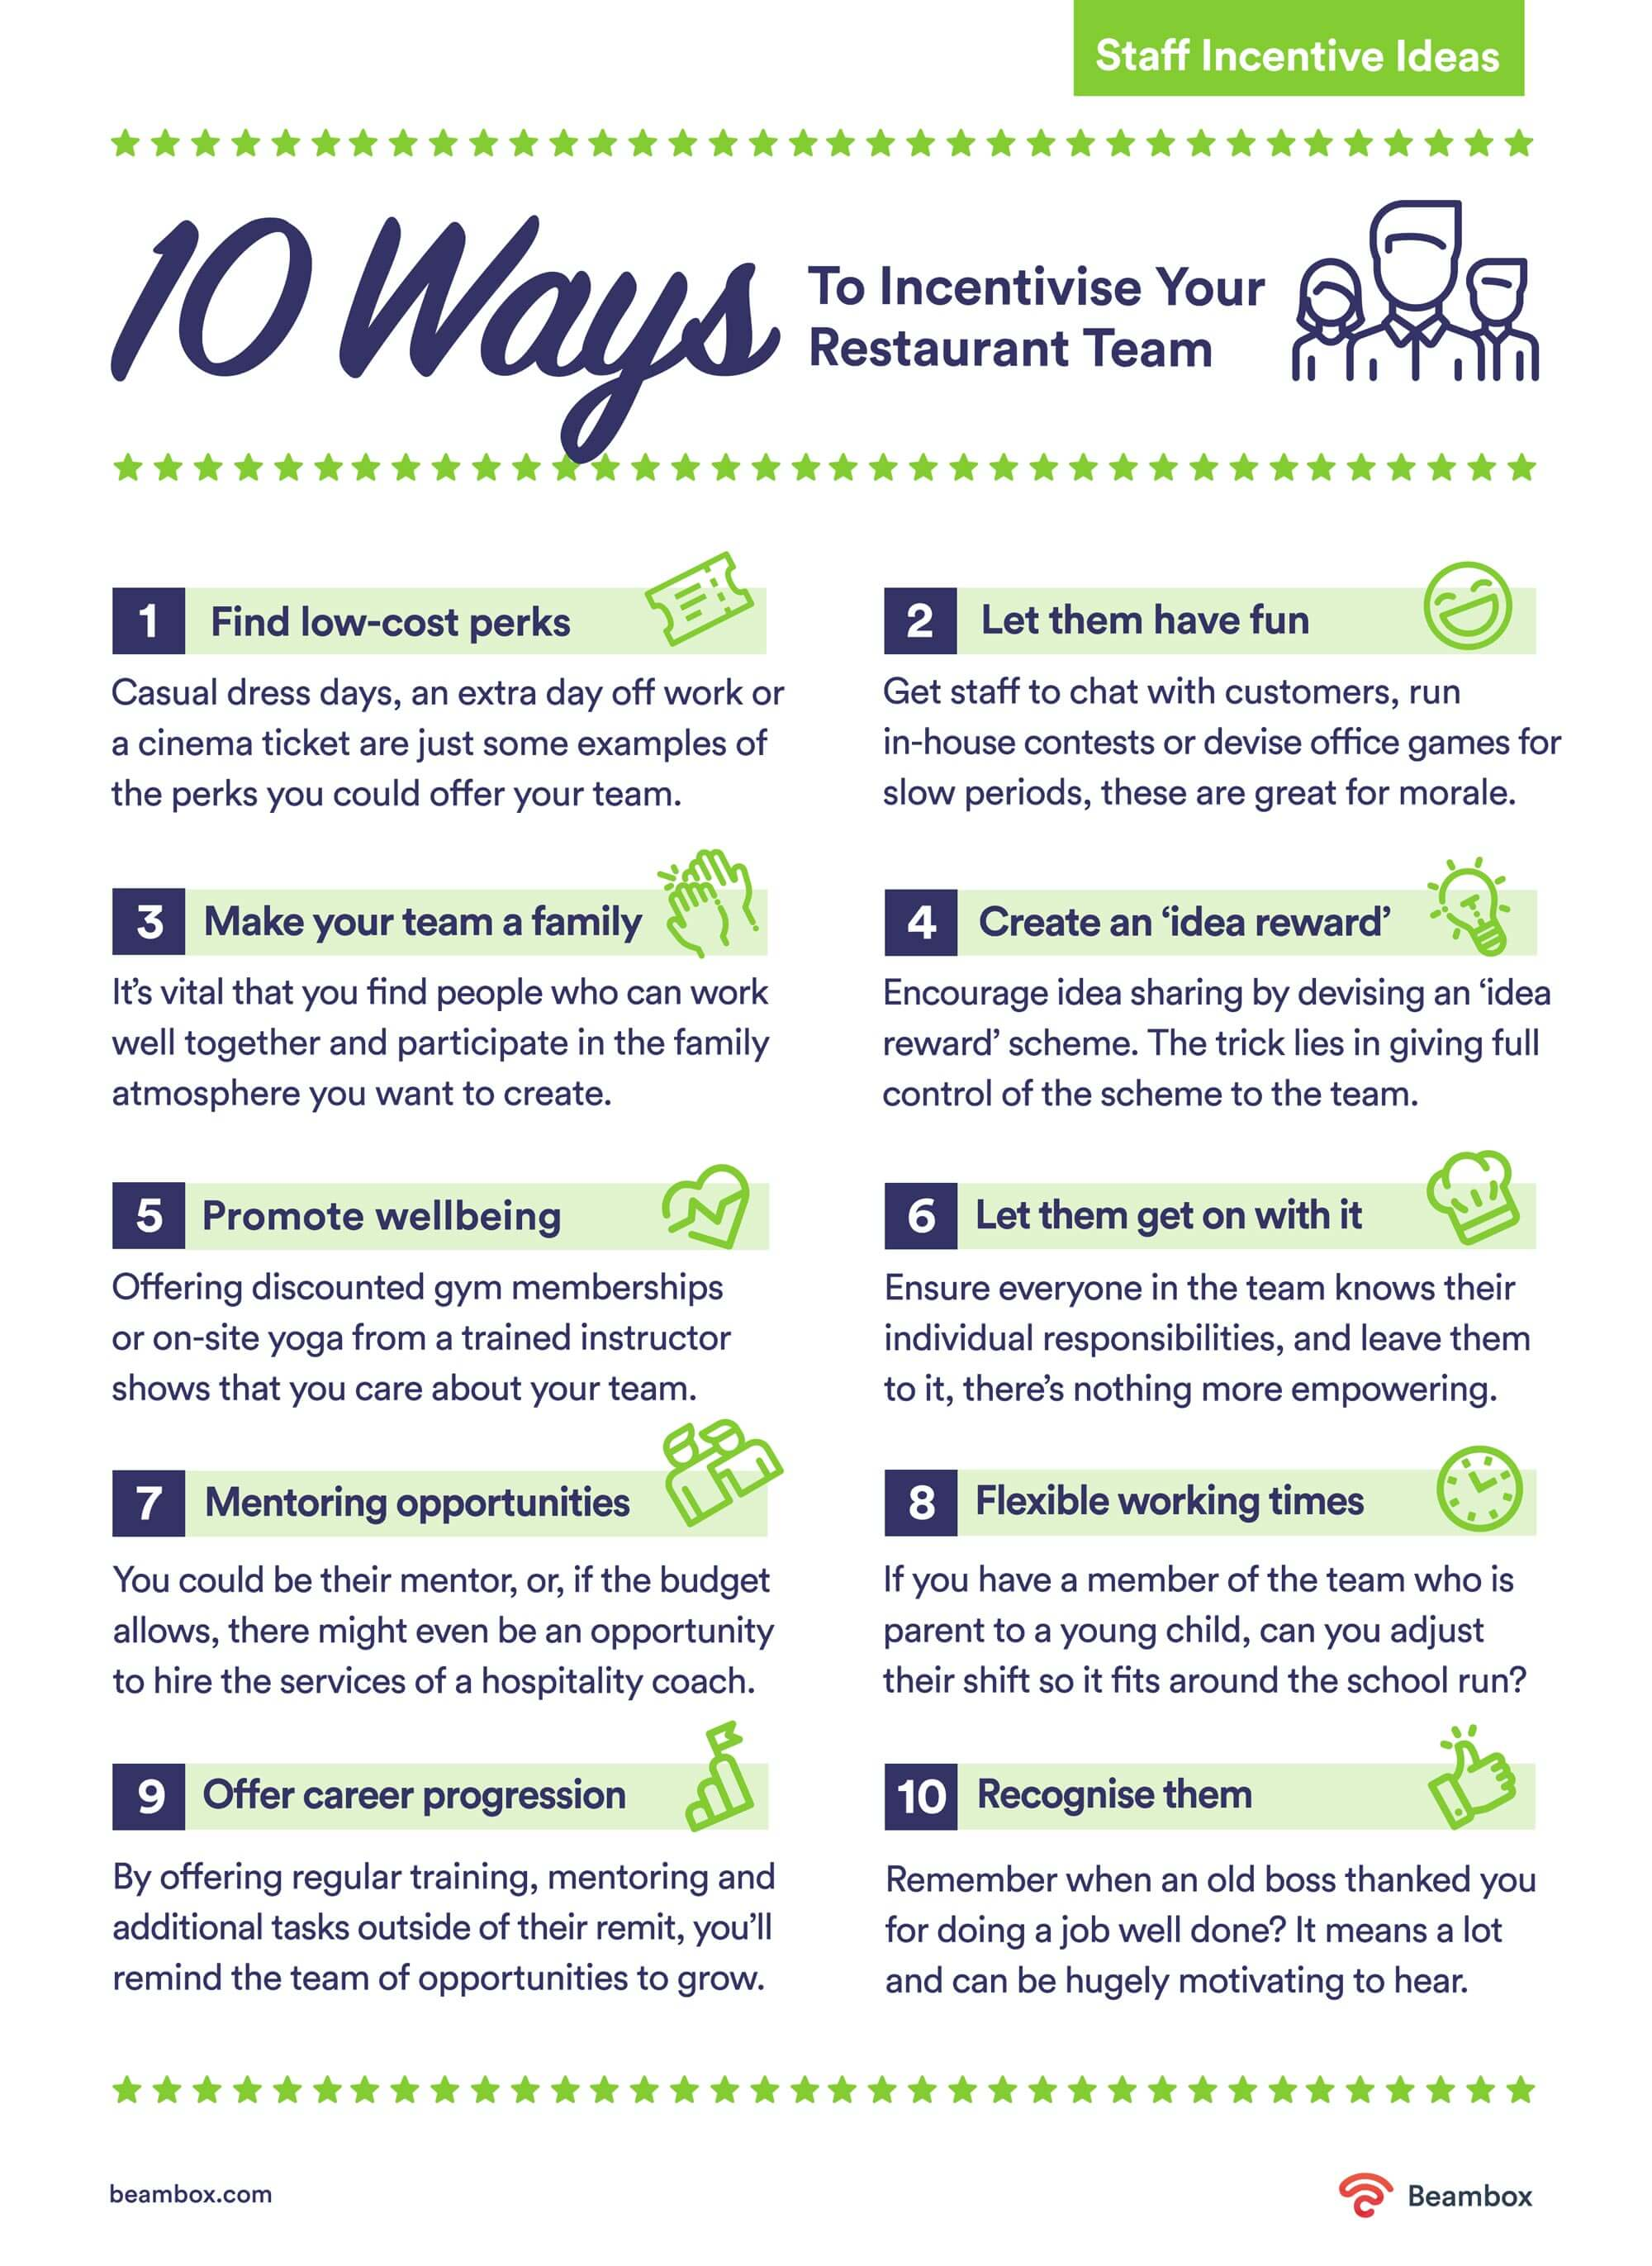 how to incentivise restaurant staff